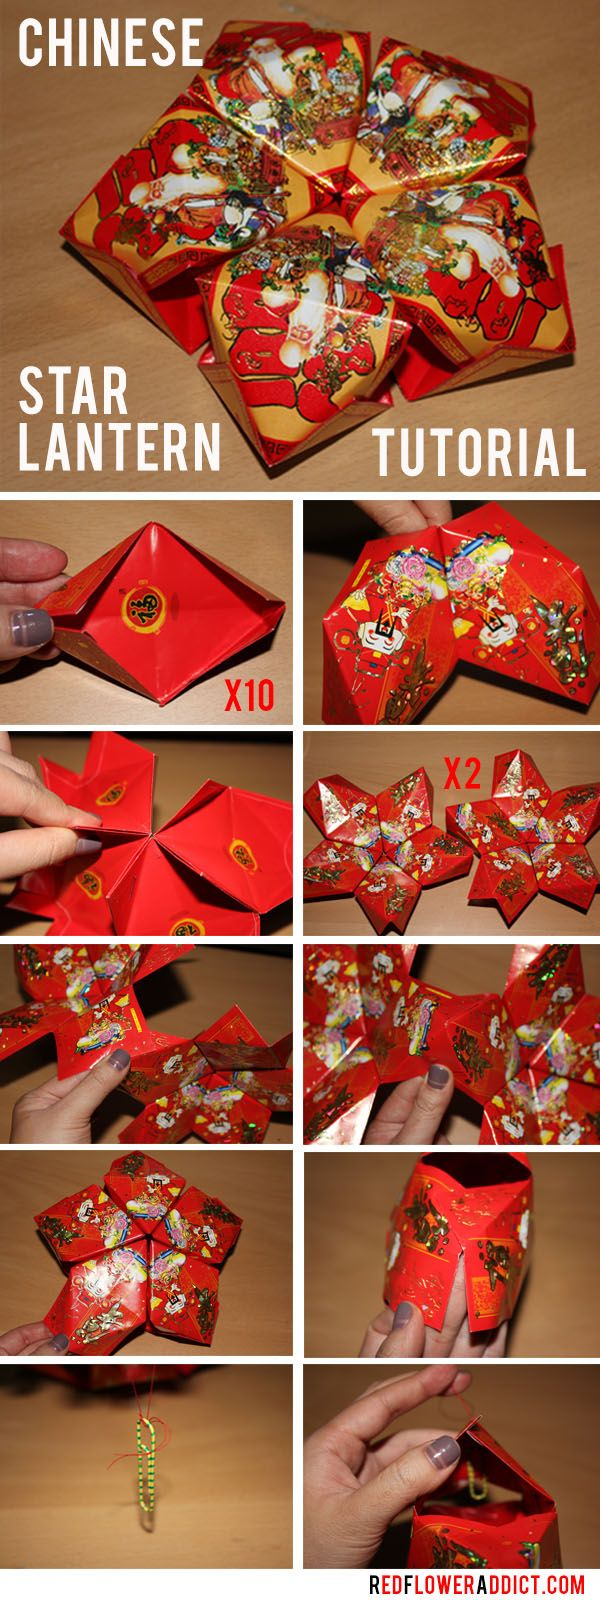 Haven't done this one yet ) Chinese New Year Star Lantern